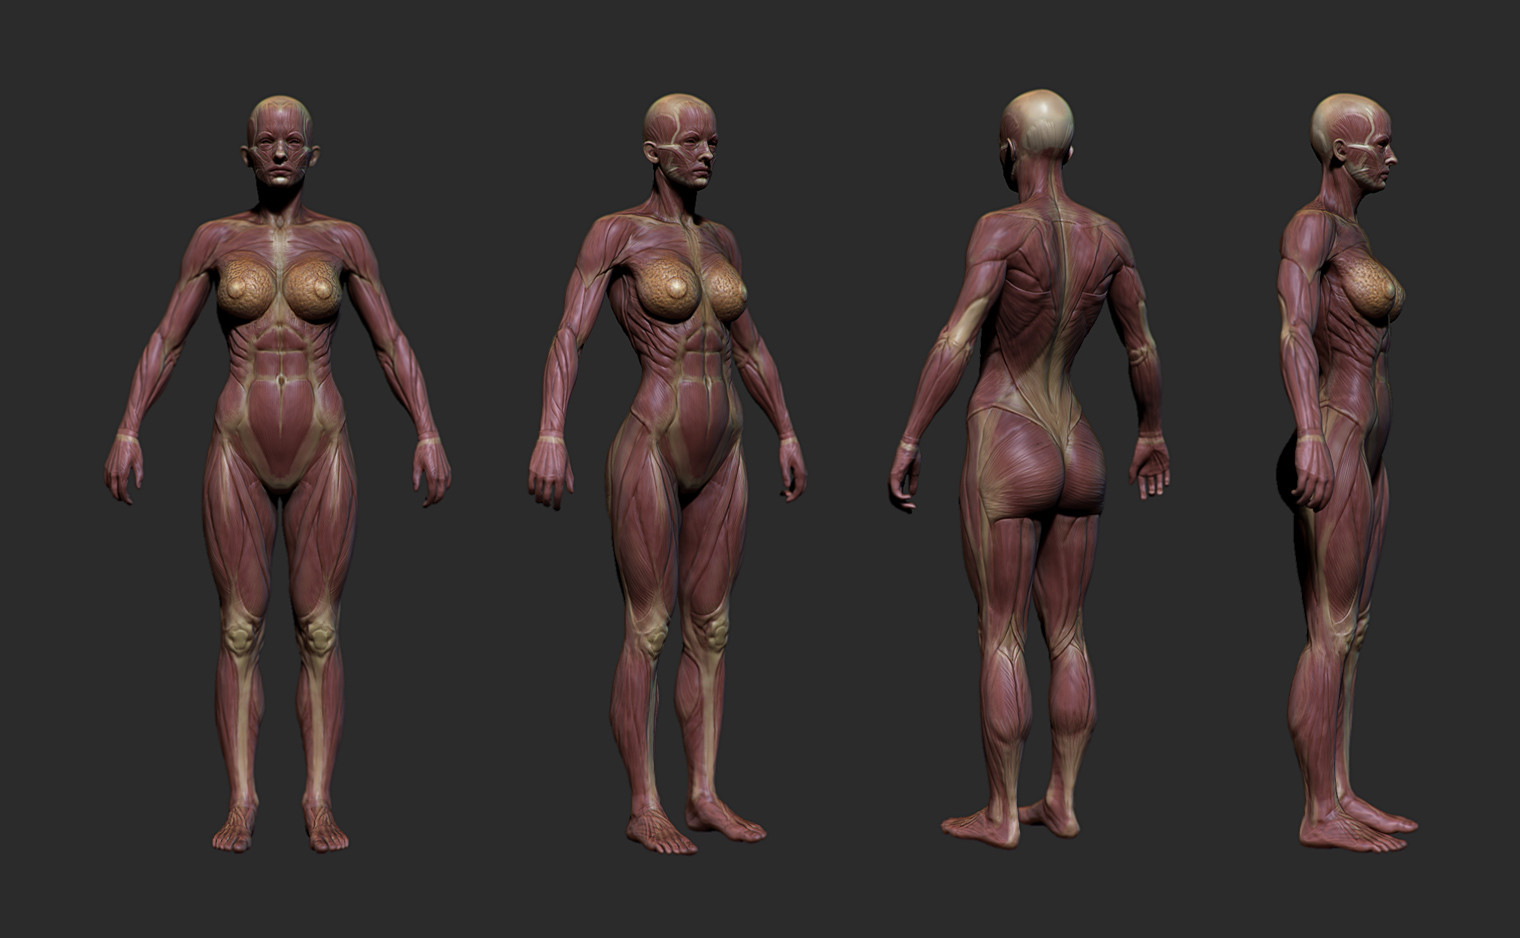 As these characters were damaged, their flesh would give way to reveal blood, muscle and bone underneath. This was one of several damage state models. This was also used for quiet's invisibility effect.